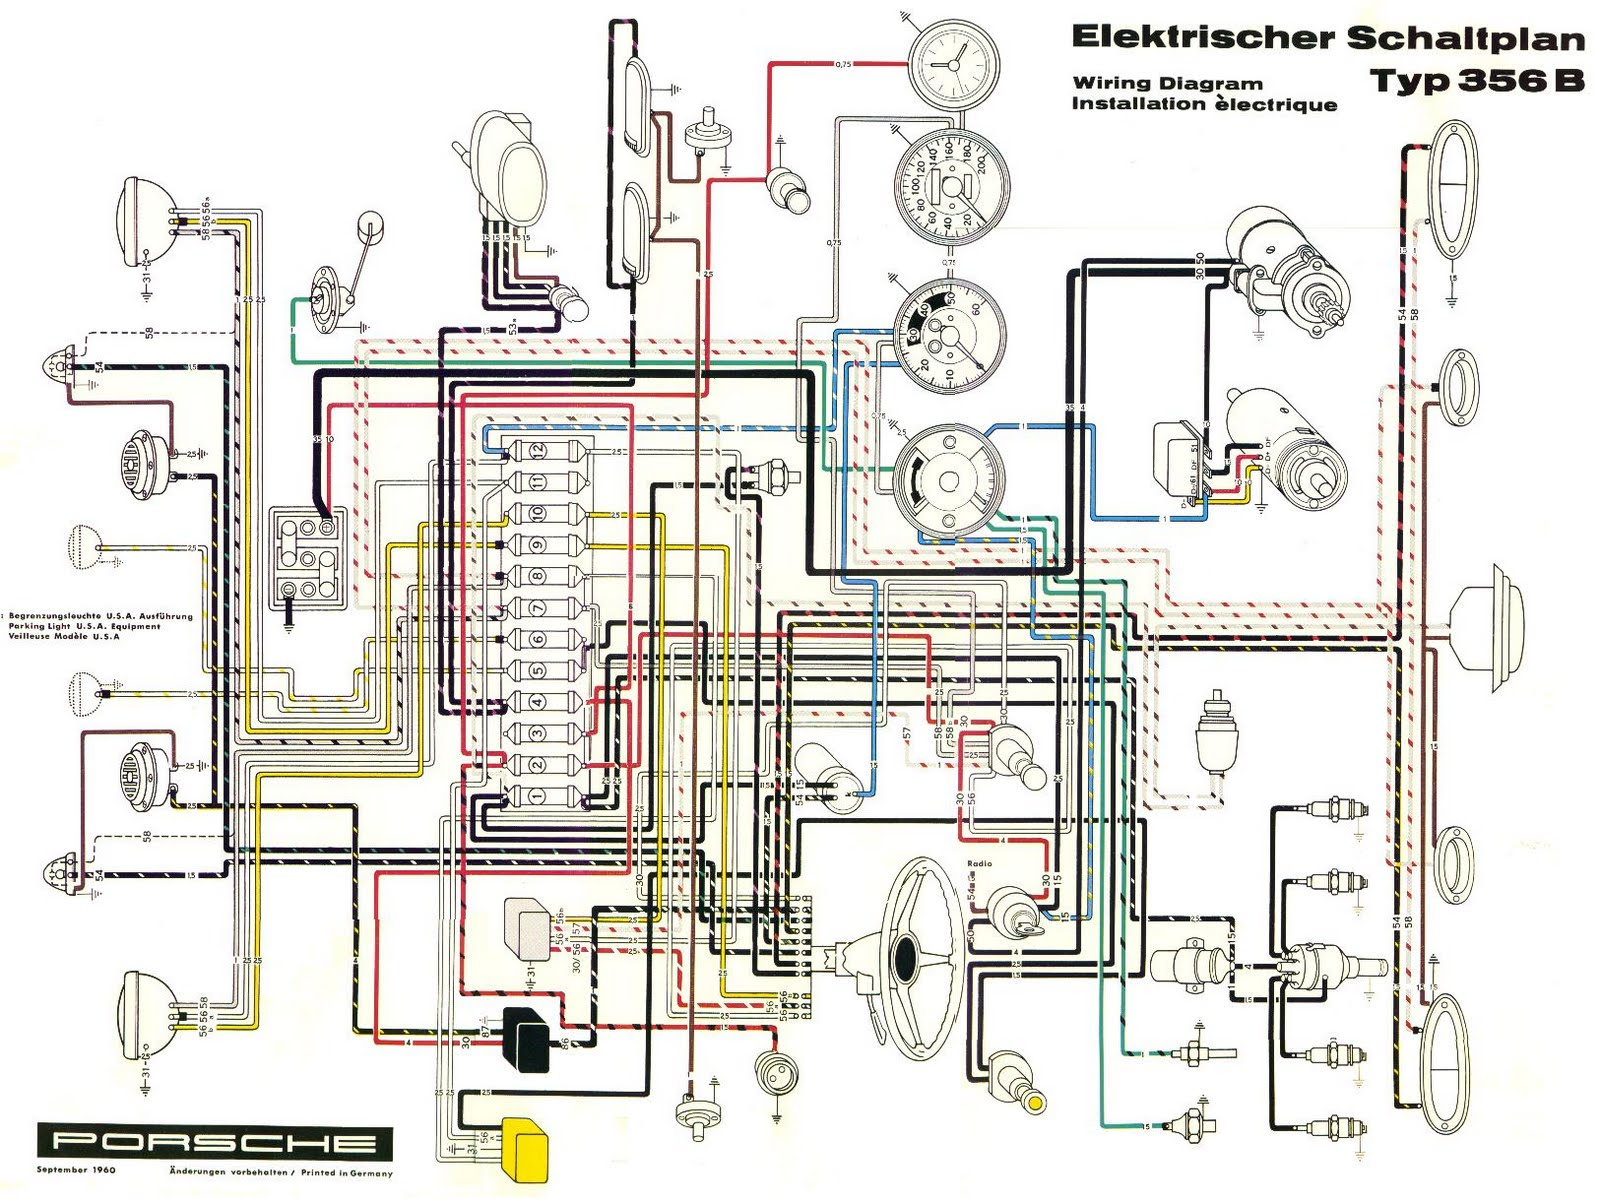 Porsche - Car Manuals, Wiring Diagrams PDF & Fault Codes on corvette schematics diagrams, porsche parts diagrams, banquet style meeting room set up diagrams, porsche transmission, fluid power diagrams, complete streets diagrams, porsche 996 diagrams, porsche engine, porsche 914 wiring harness, porsche blueprints,